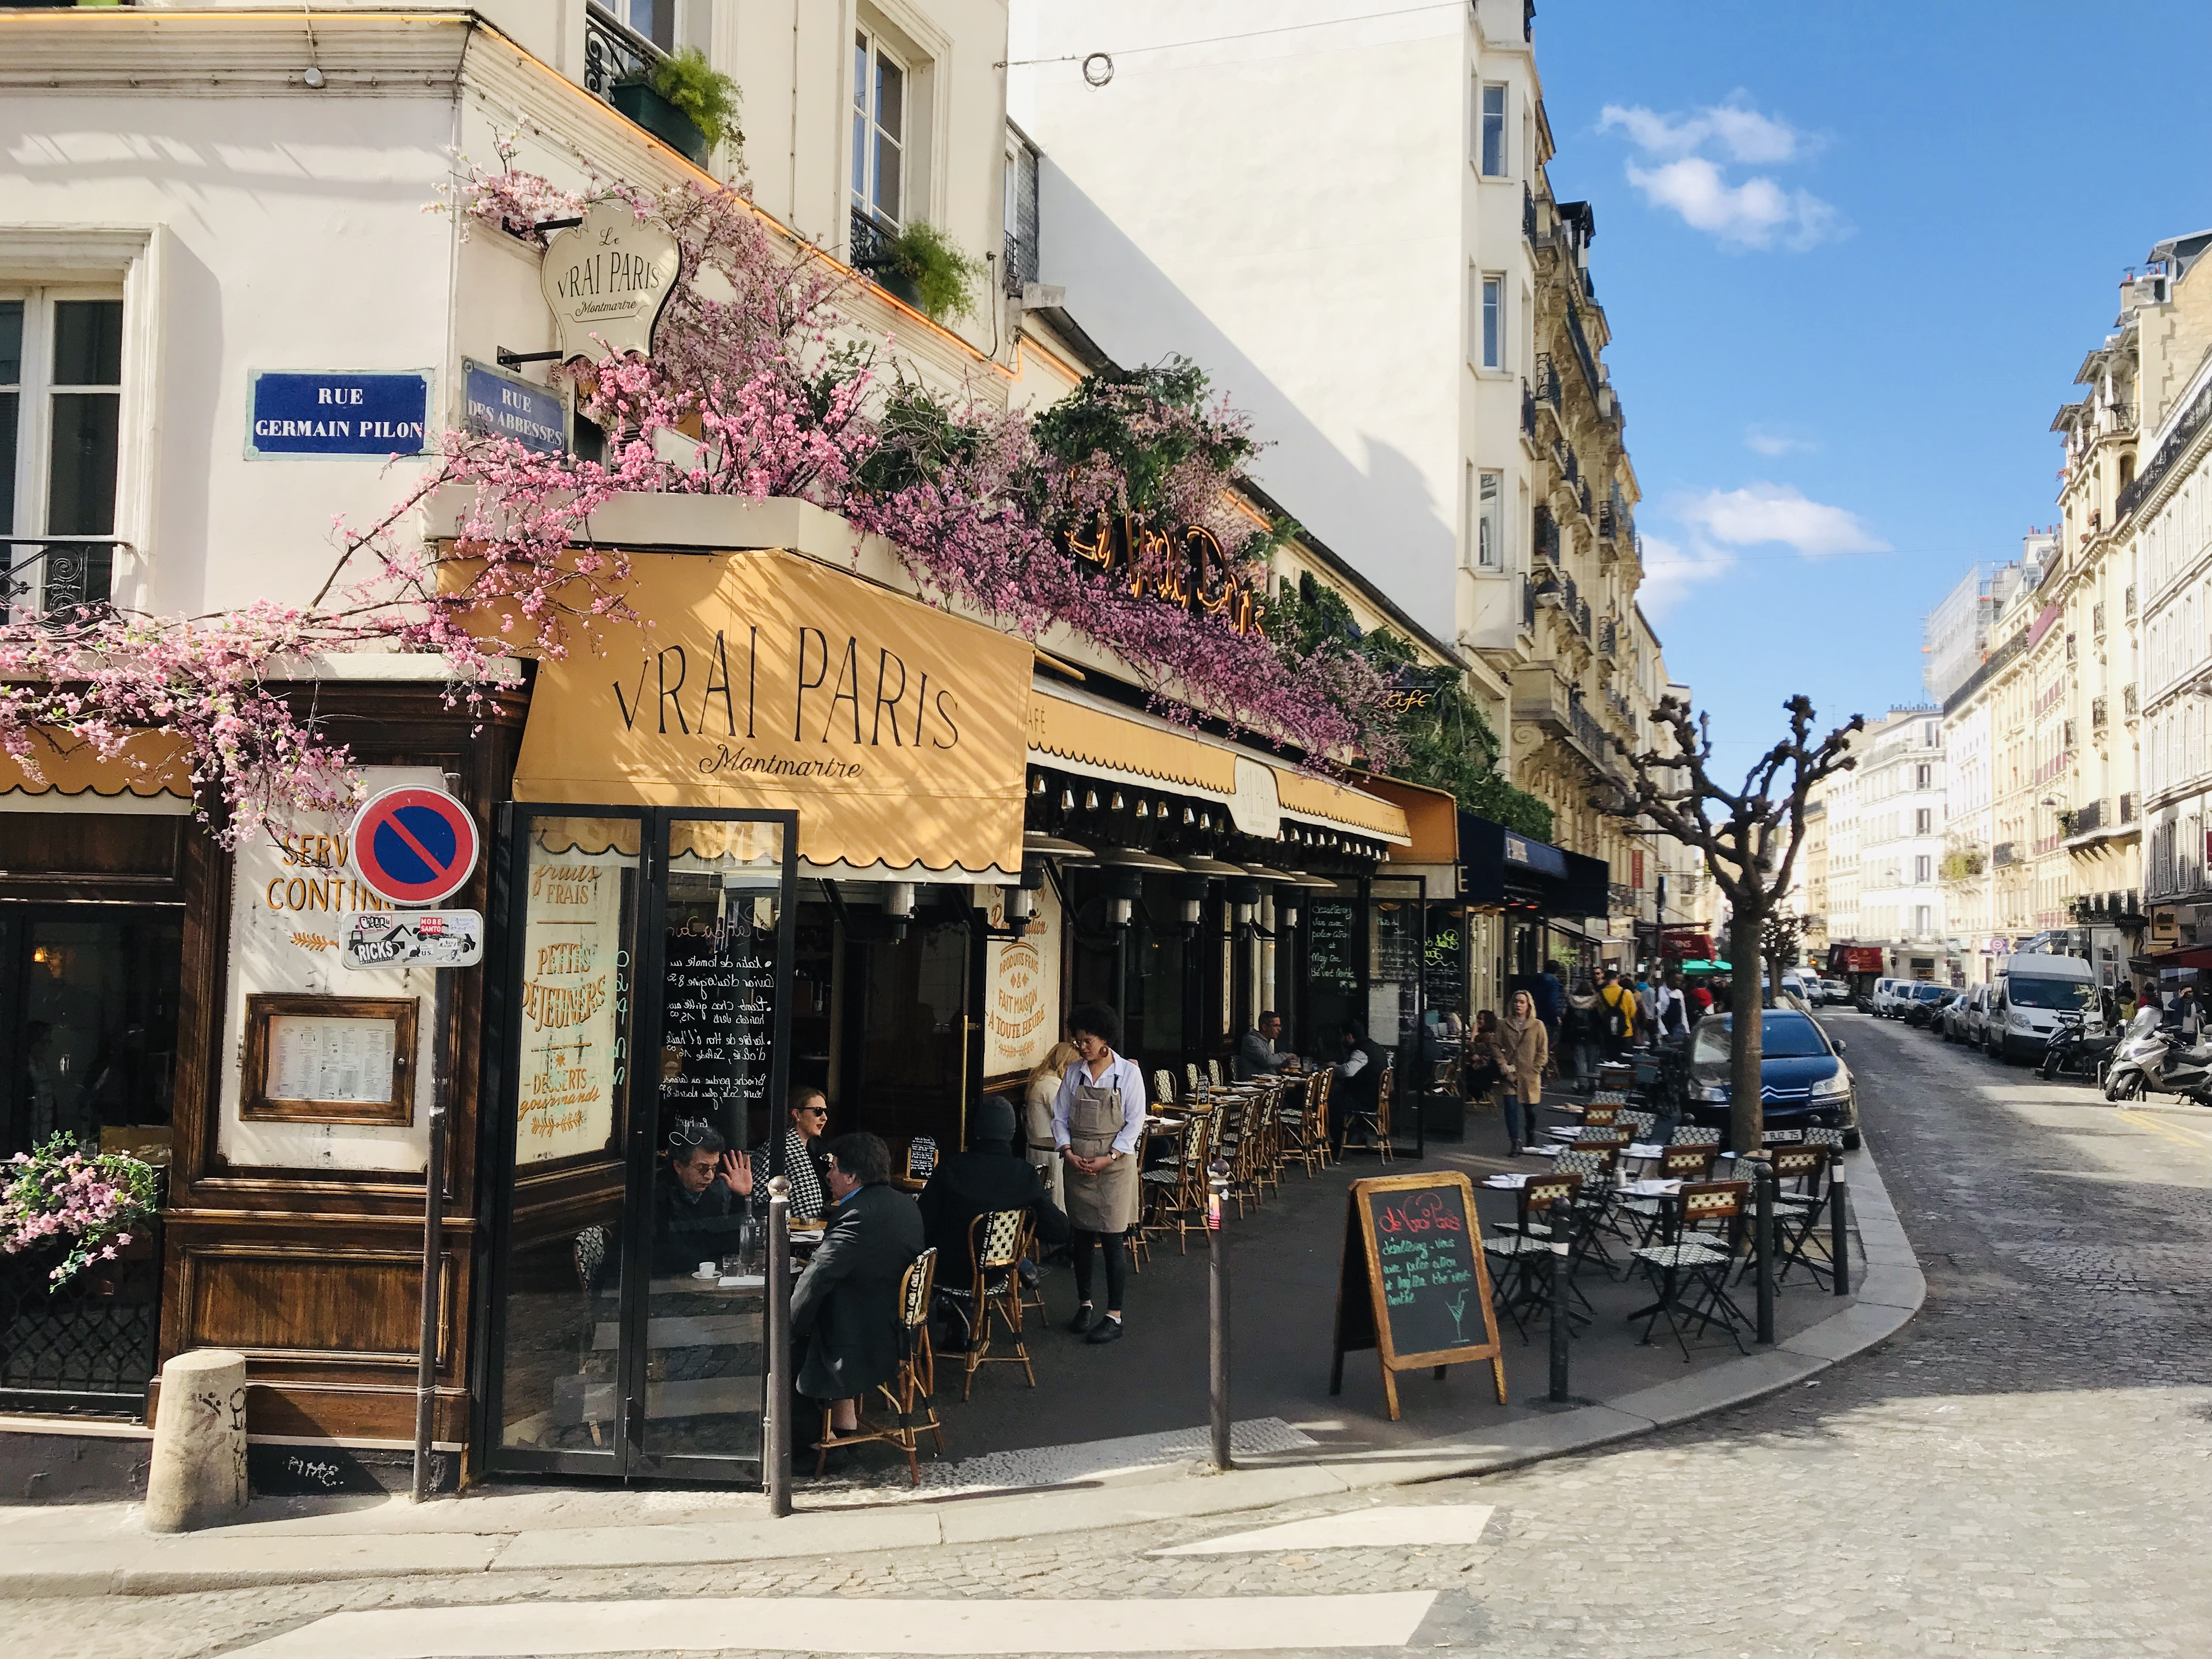 37c2460fa6 Is Paris the perfect city for walking? - The Earful Tower